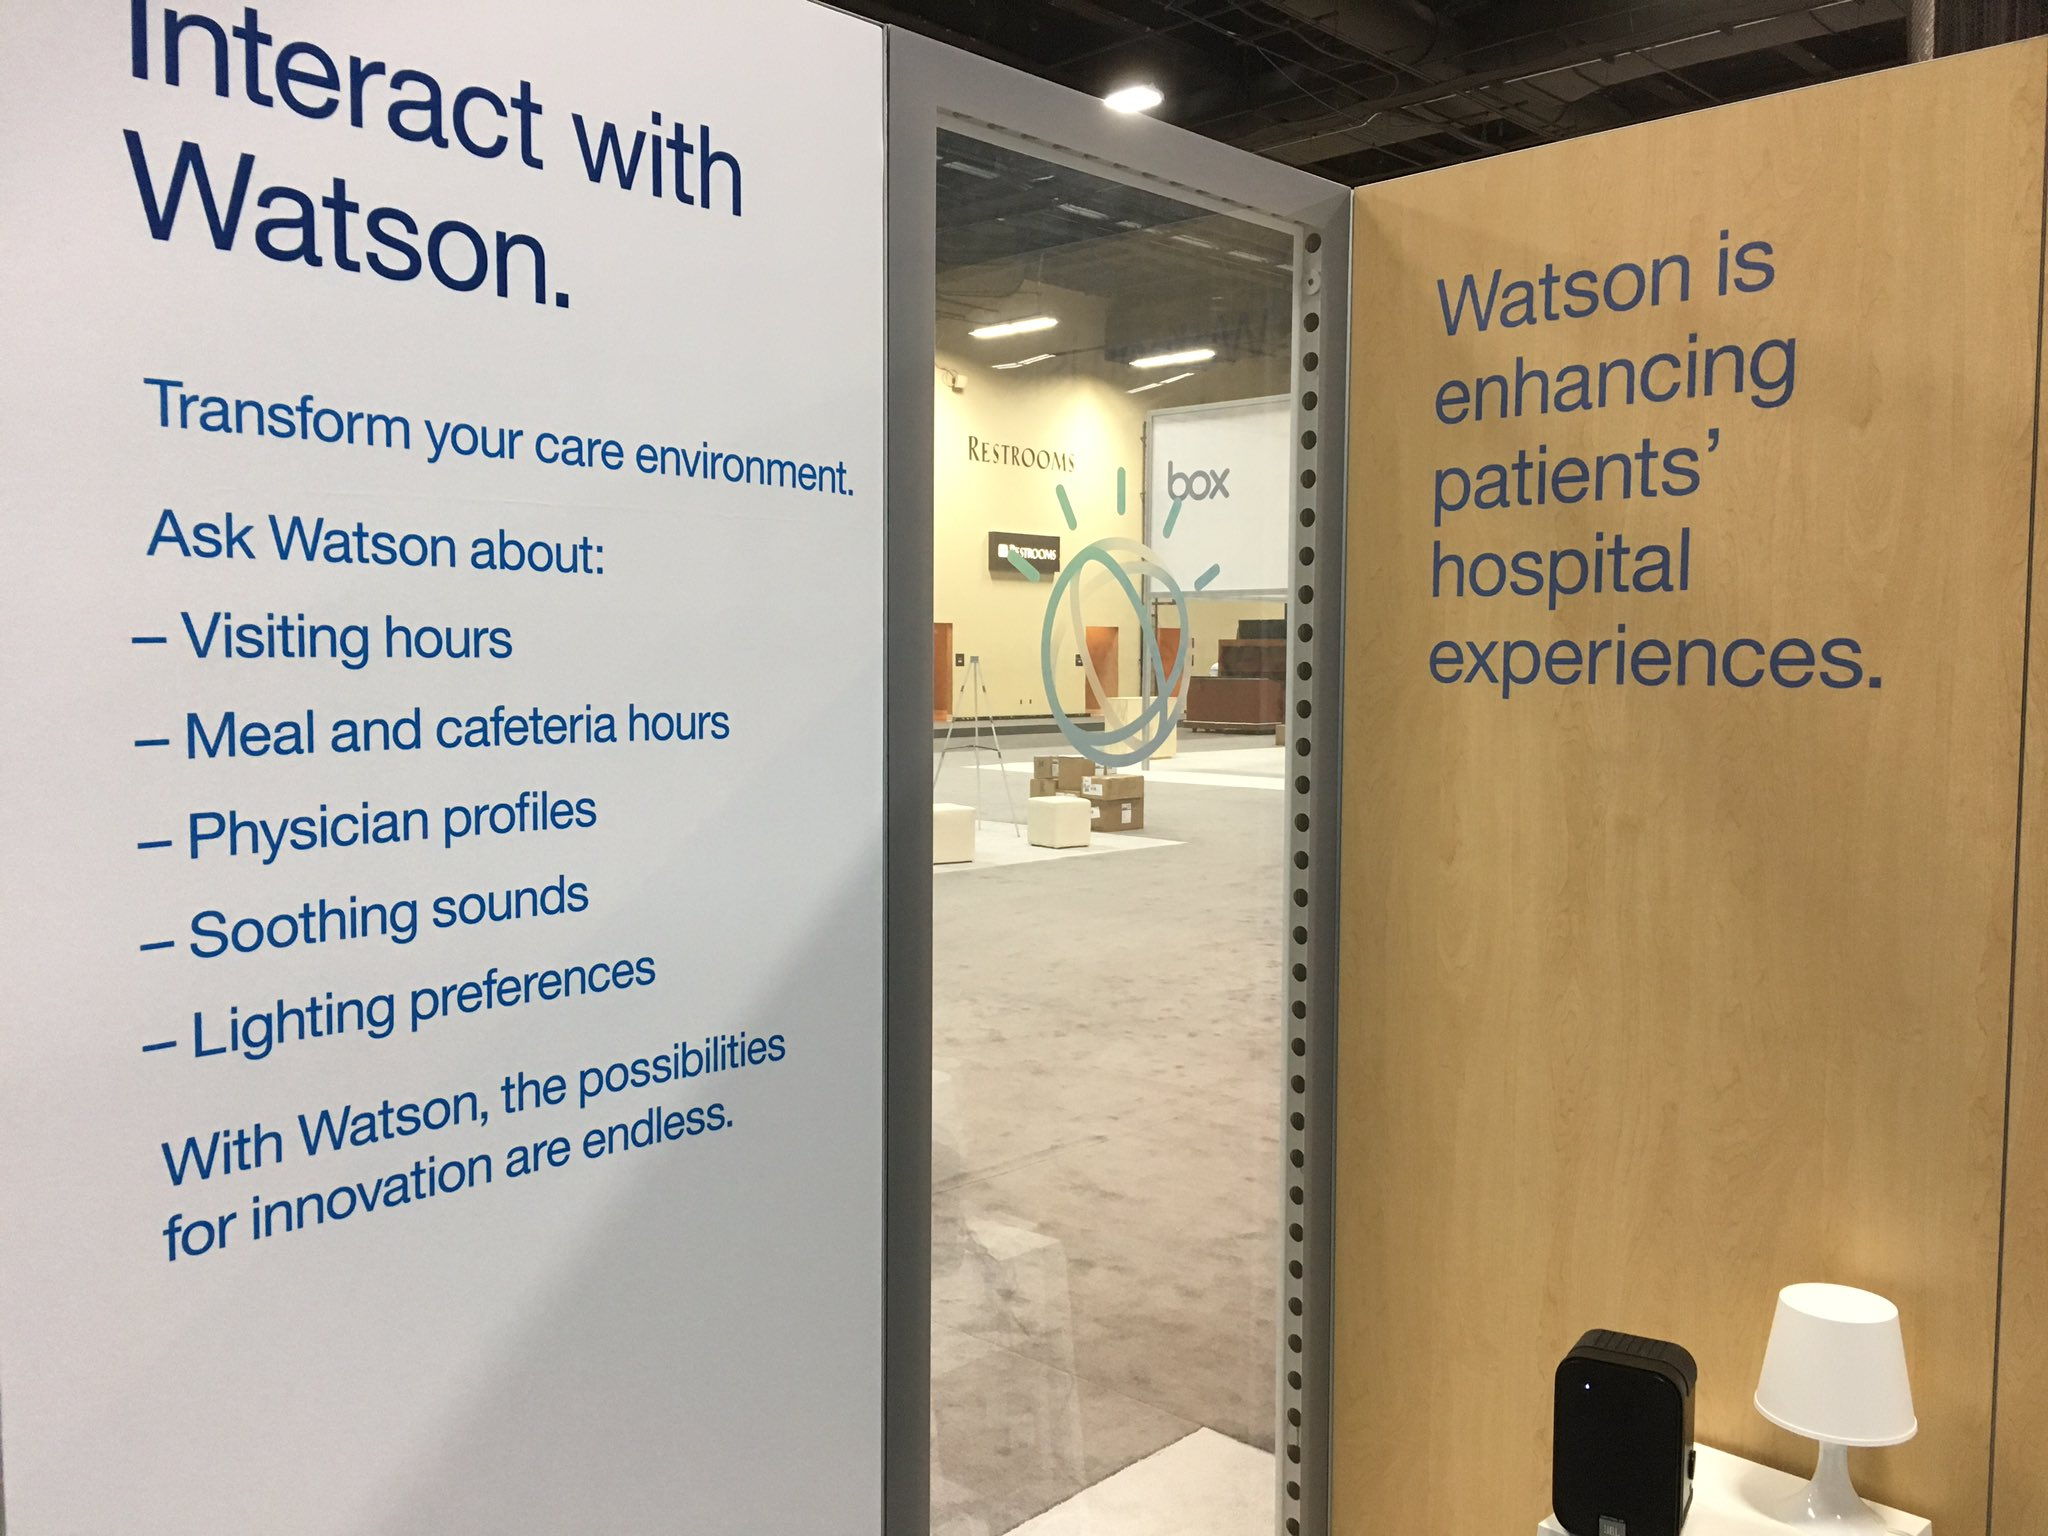 Helping setup the patient experience demo #ibmwow https://t.co/1hZElbyuhl